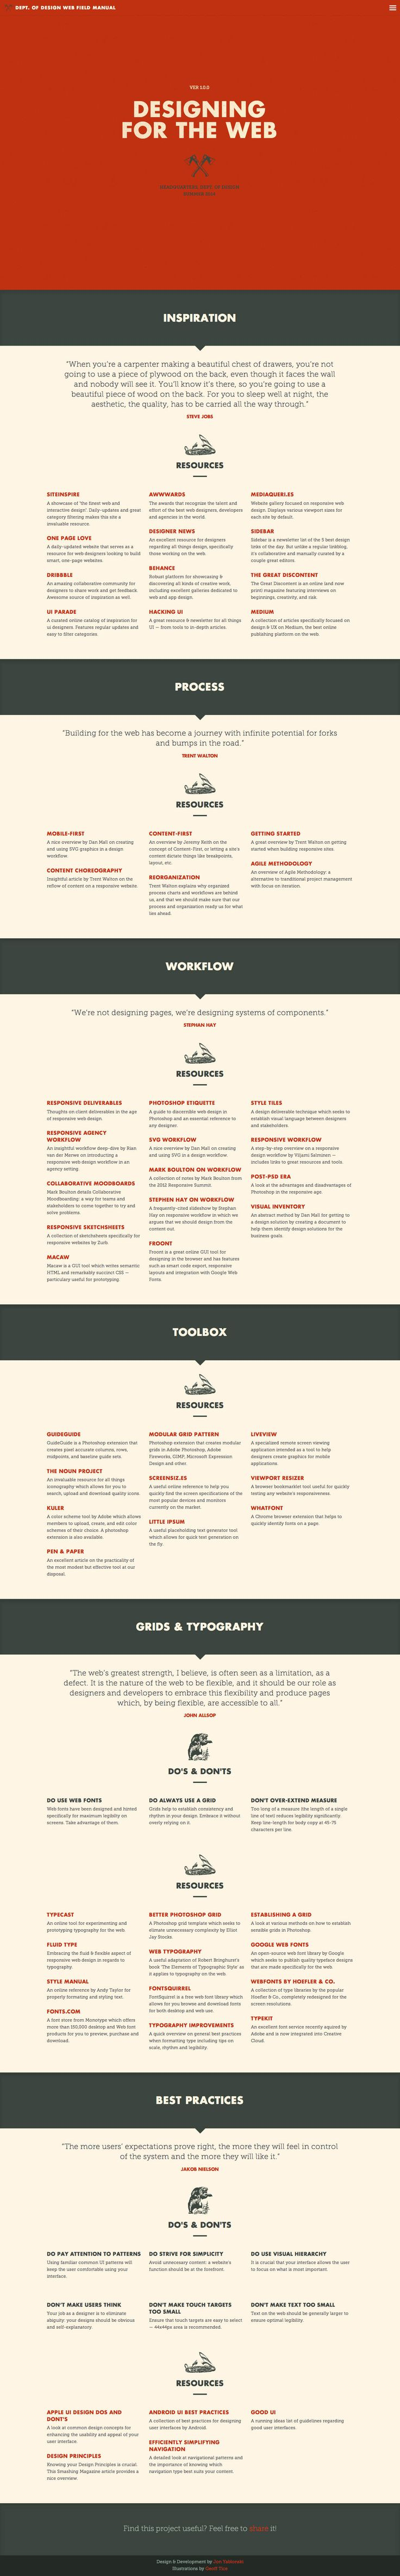 'Web Field Manual' is a long informational one pager that provides useful (and well curated) links to inspiration and resources for website development. Good clean spacious layout with a lovely blend of fonts (Futura and Museo Slab) against a subtle background texture.